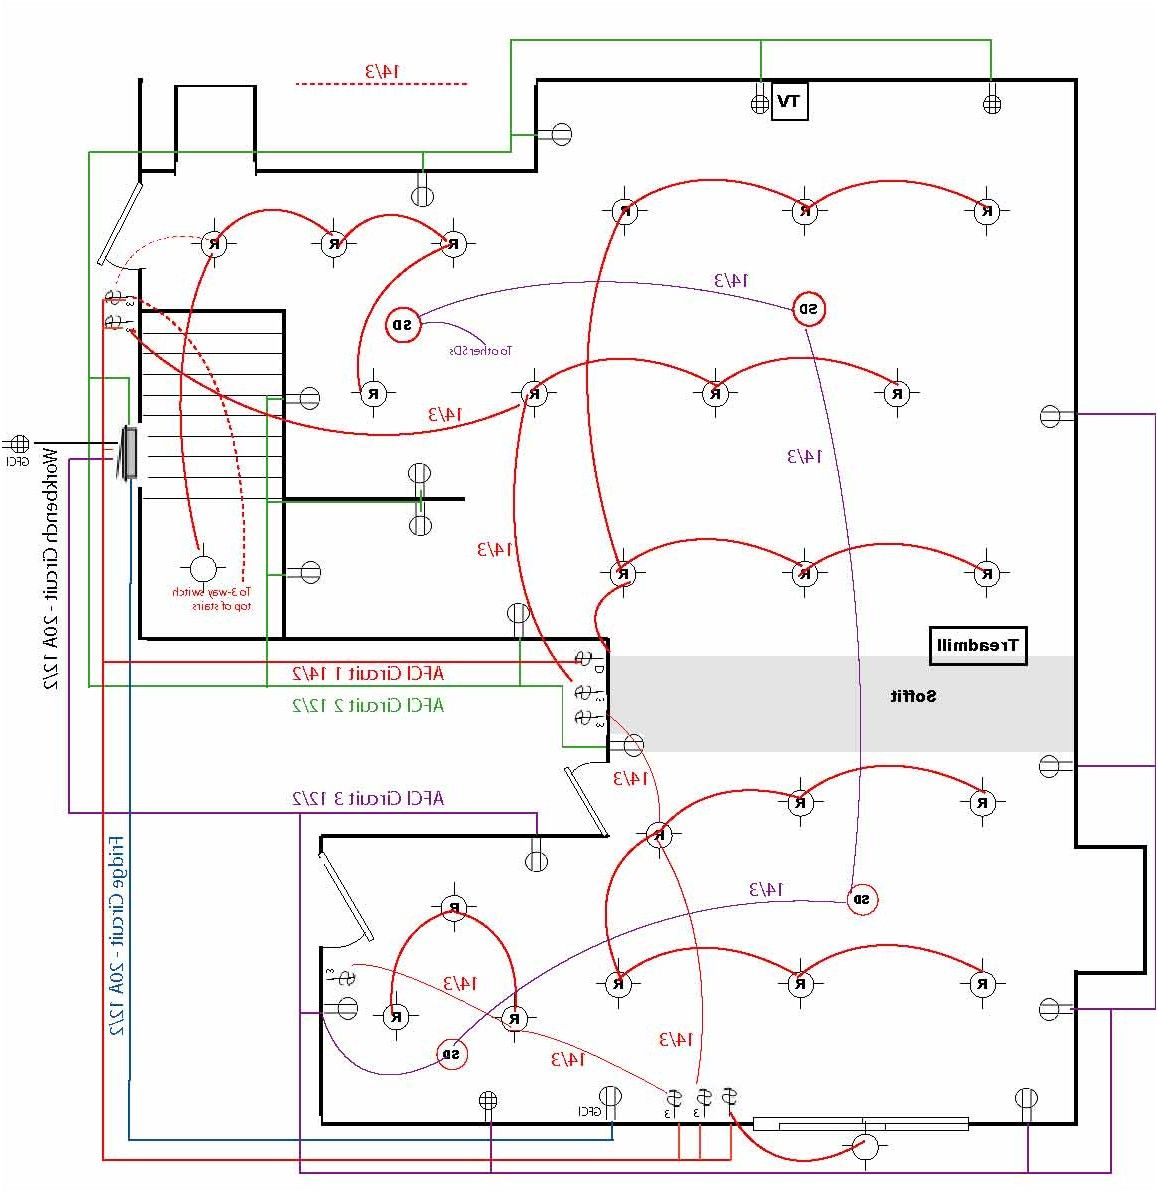 basement wiring diagram review for how to wire a diagram from Basement Electrical Wiring Diagram